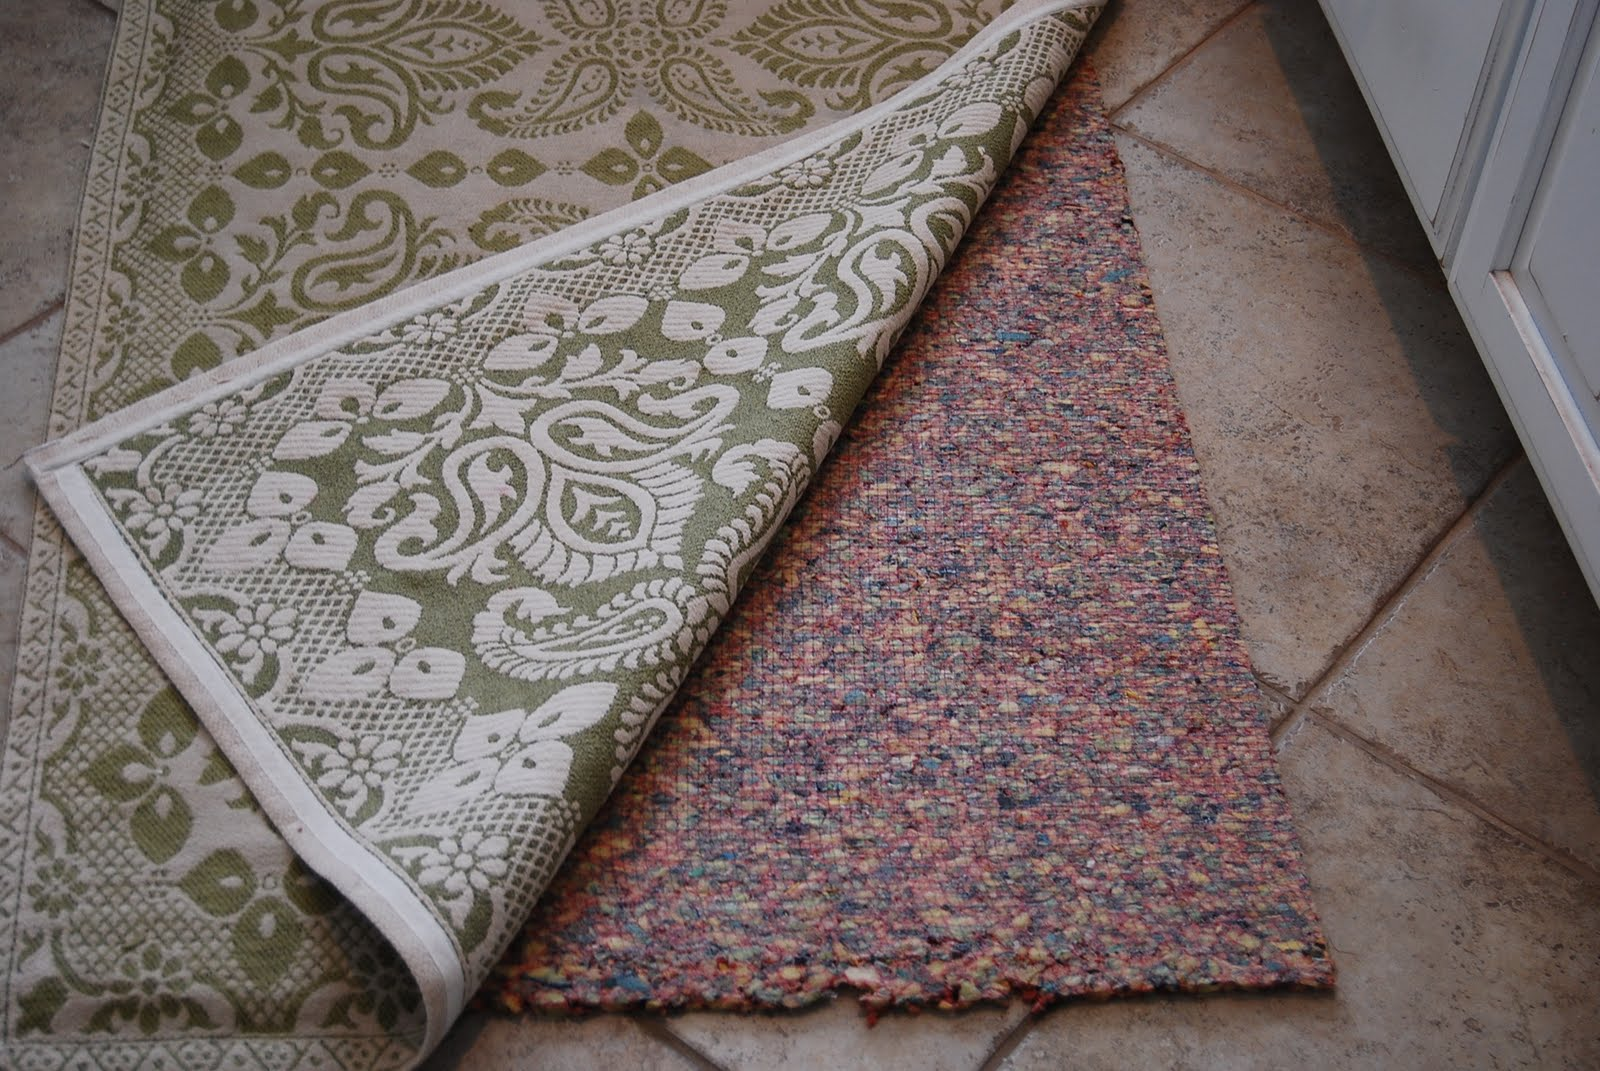 Home By Heidi: How To Keep a Rug in Place